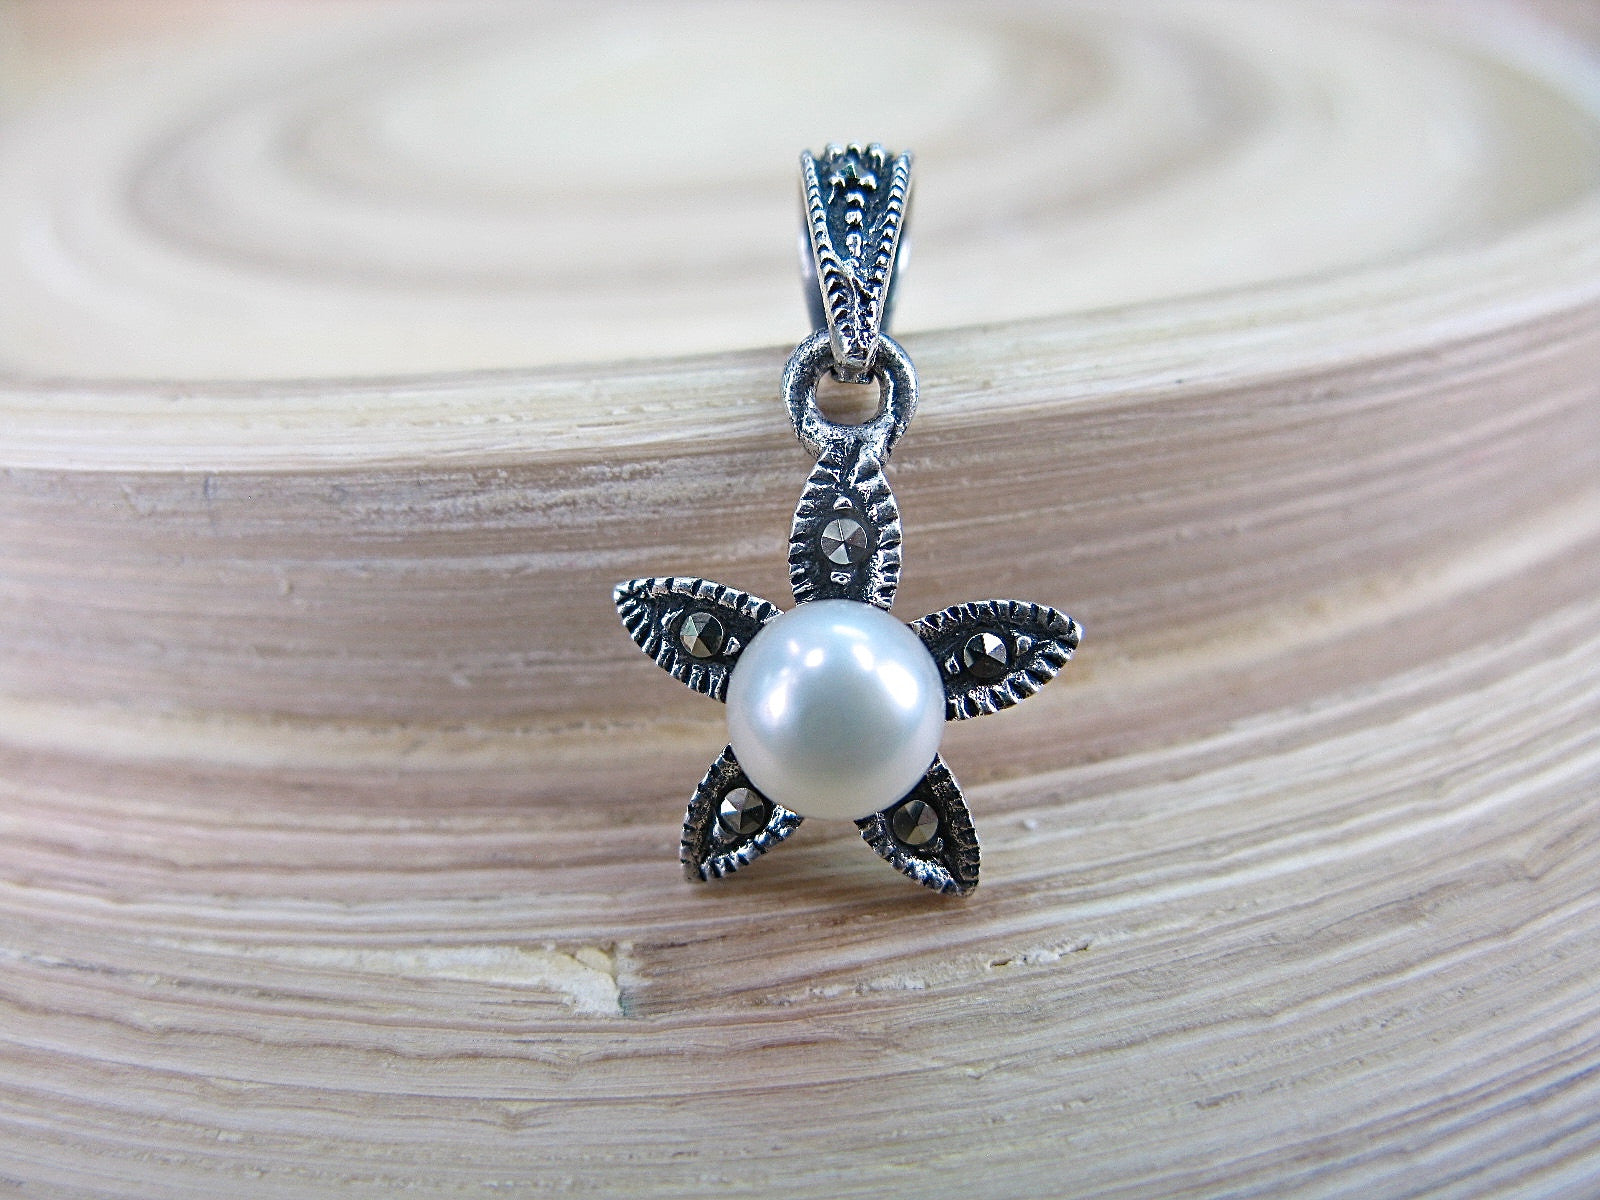 Flower Star Marcasite Pearl 925 Sterling Siliver Pendant Pendant Faith Owl - Faith Owl